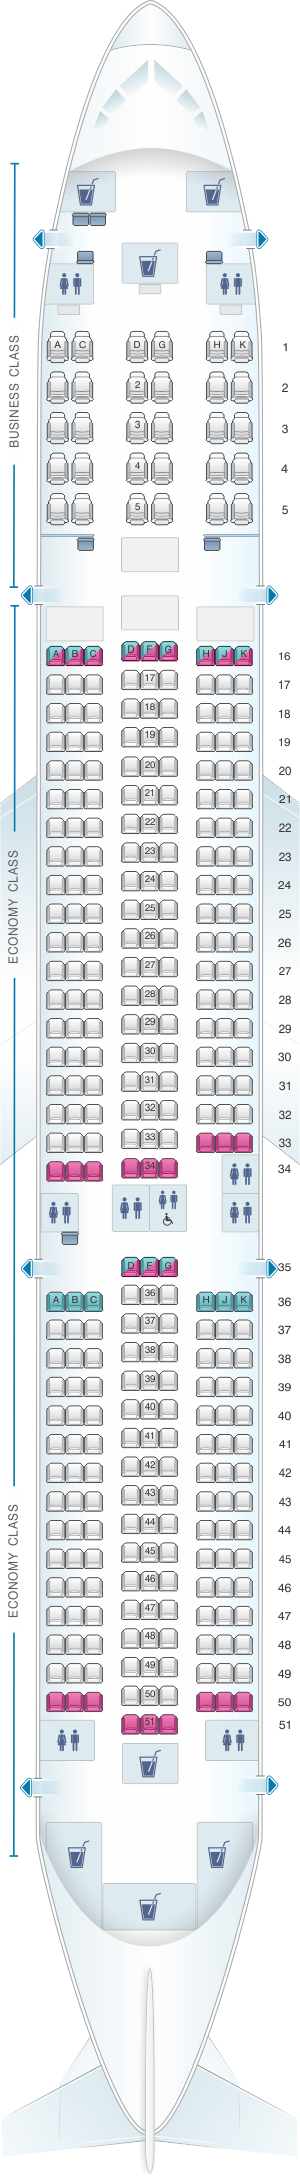 Seat map for Hainan Airlines Airbus A350 900 config.1